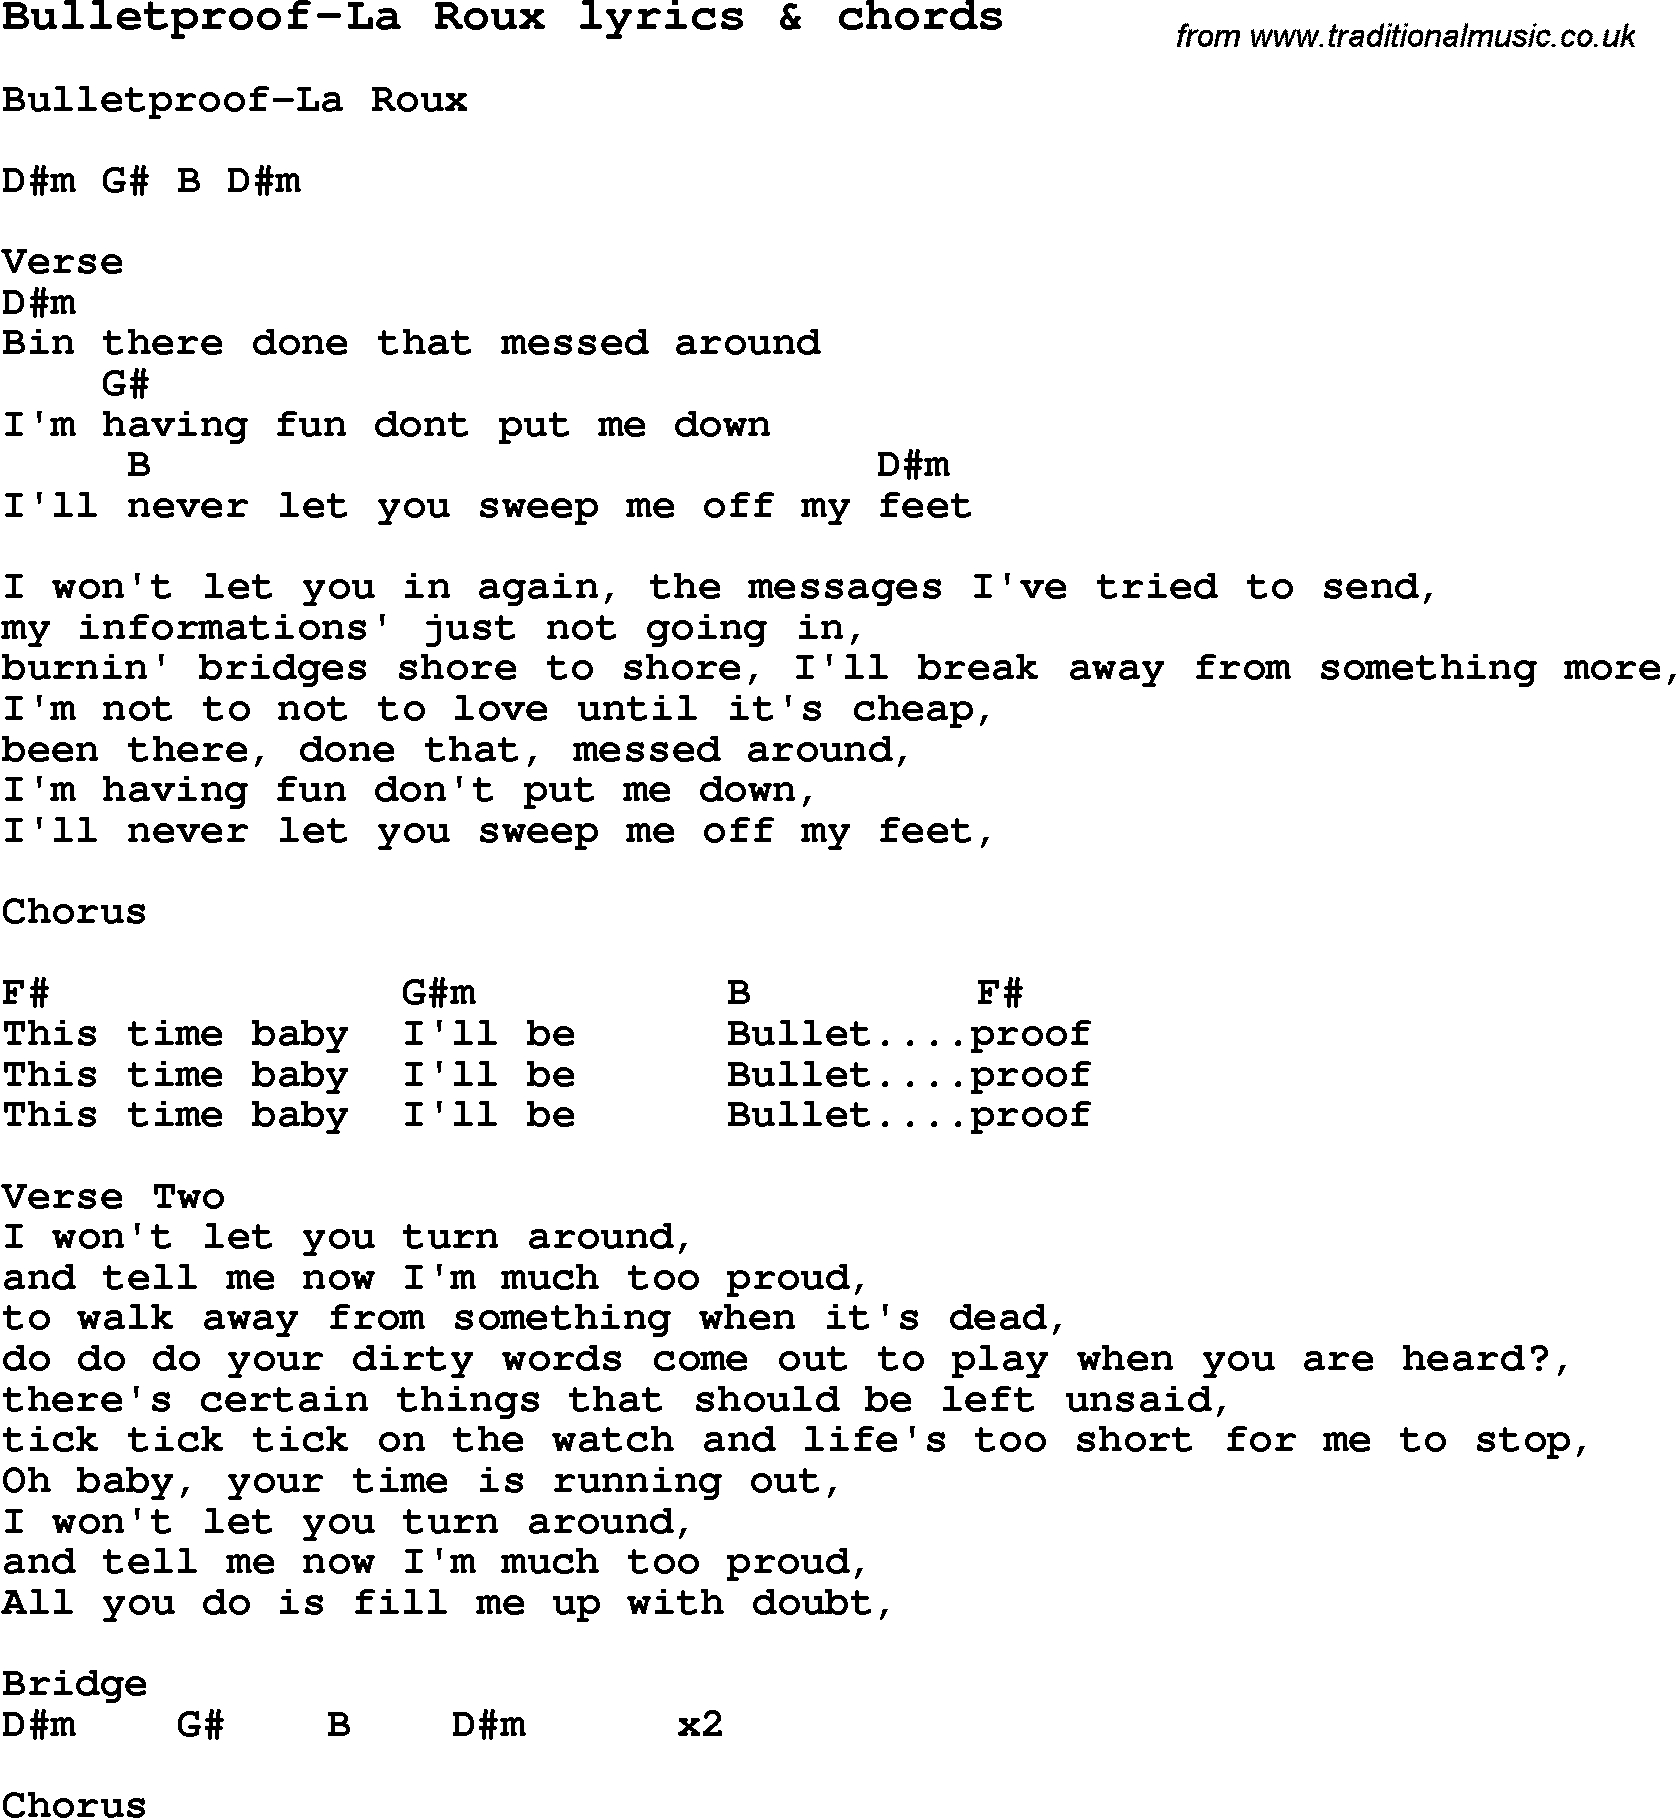 Skinny Love Chords Love Song Lyrics Forbulletproof La Roux With Chords